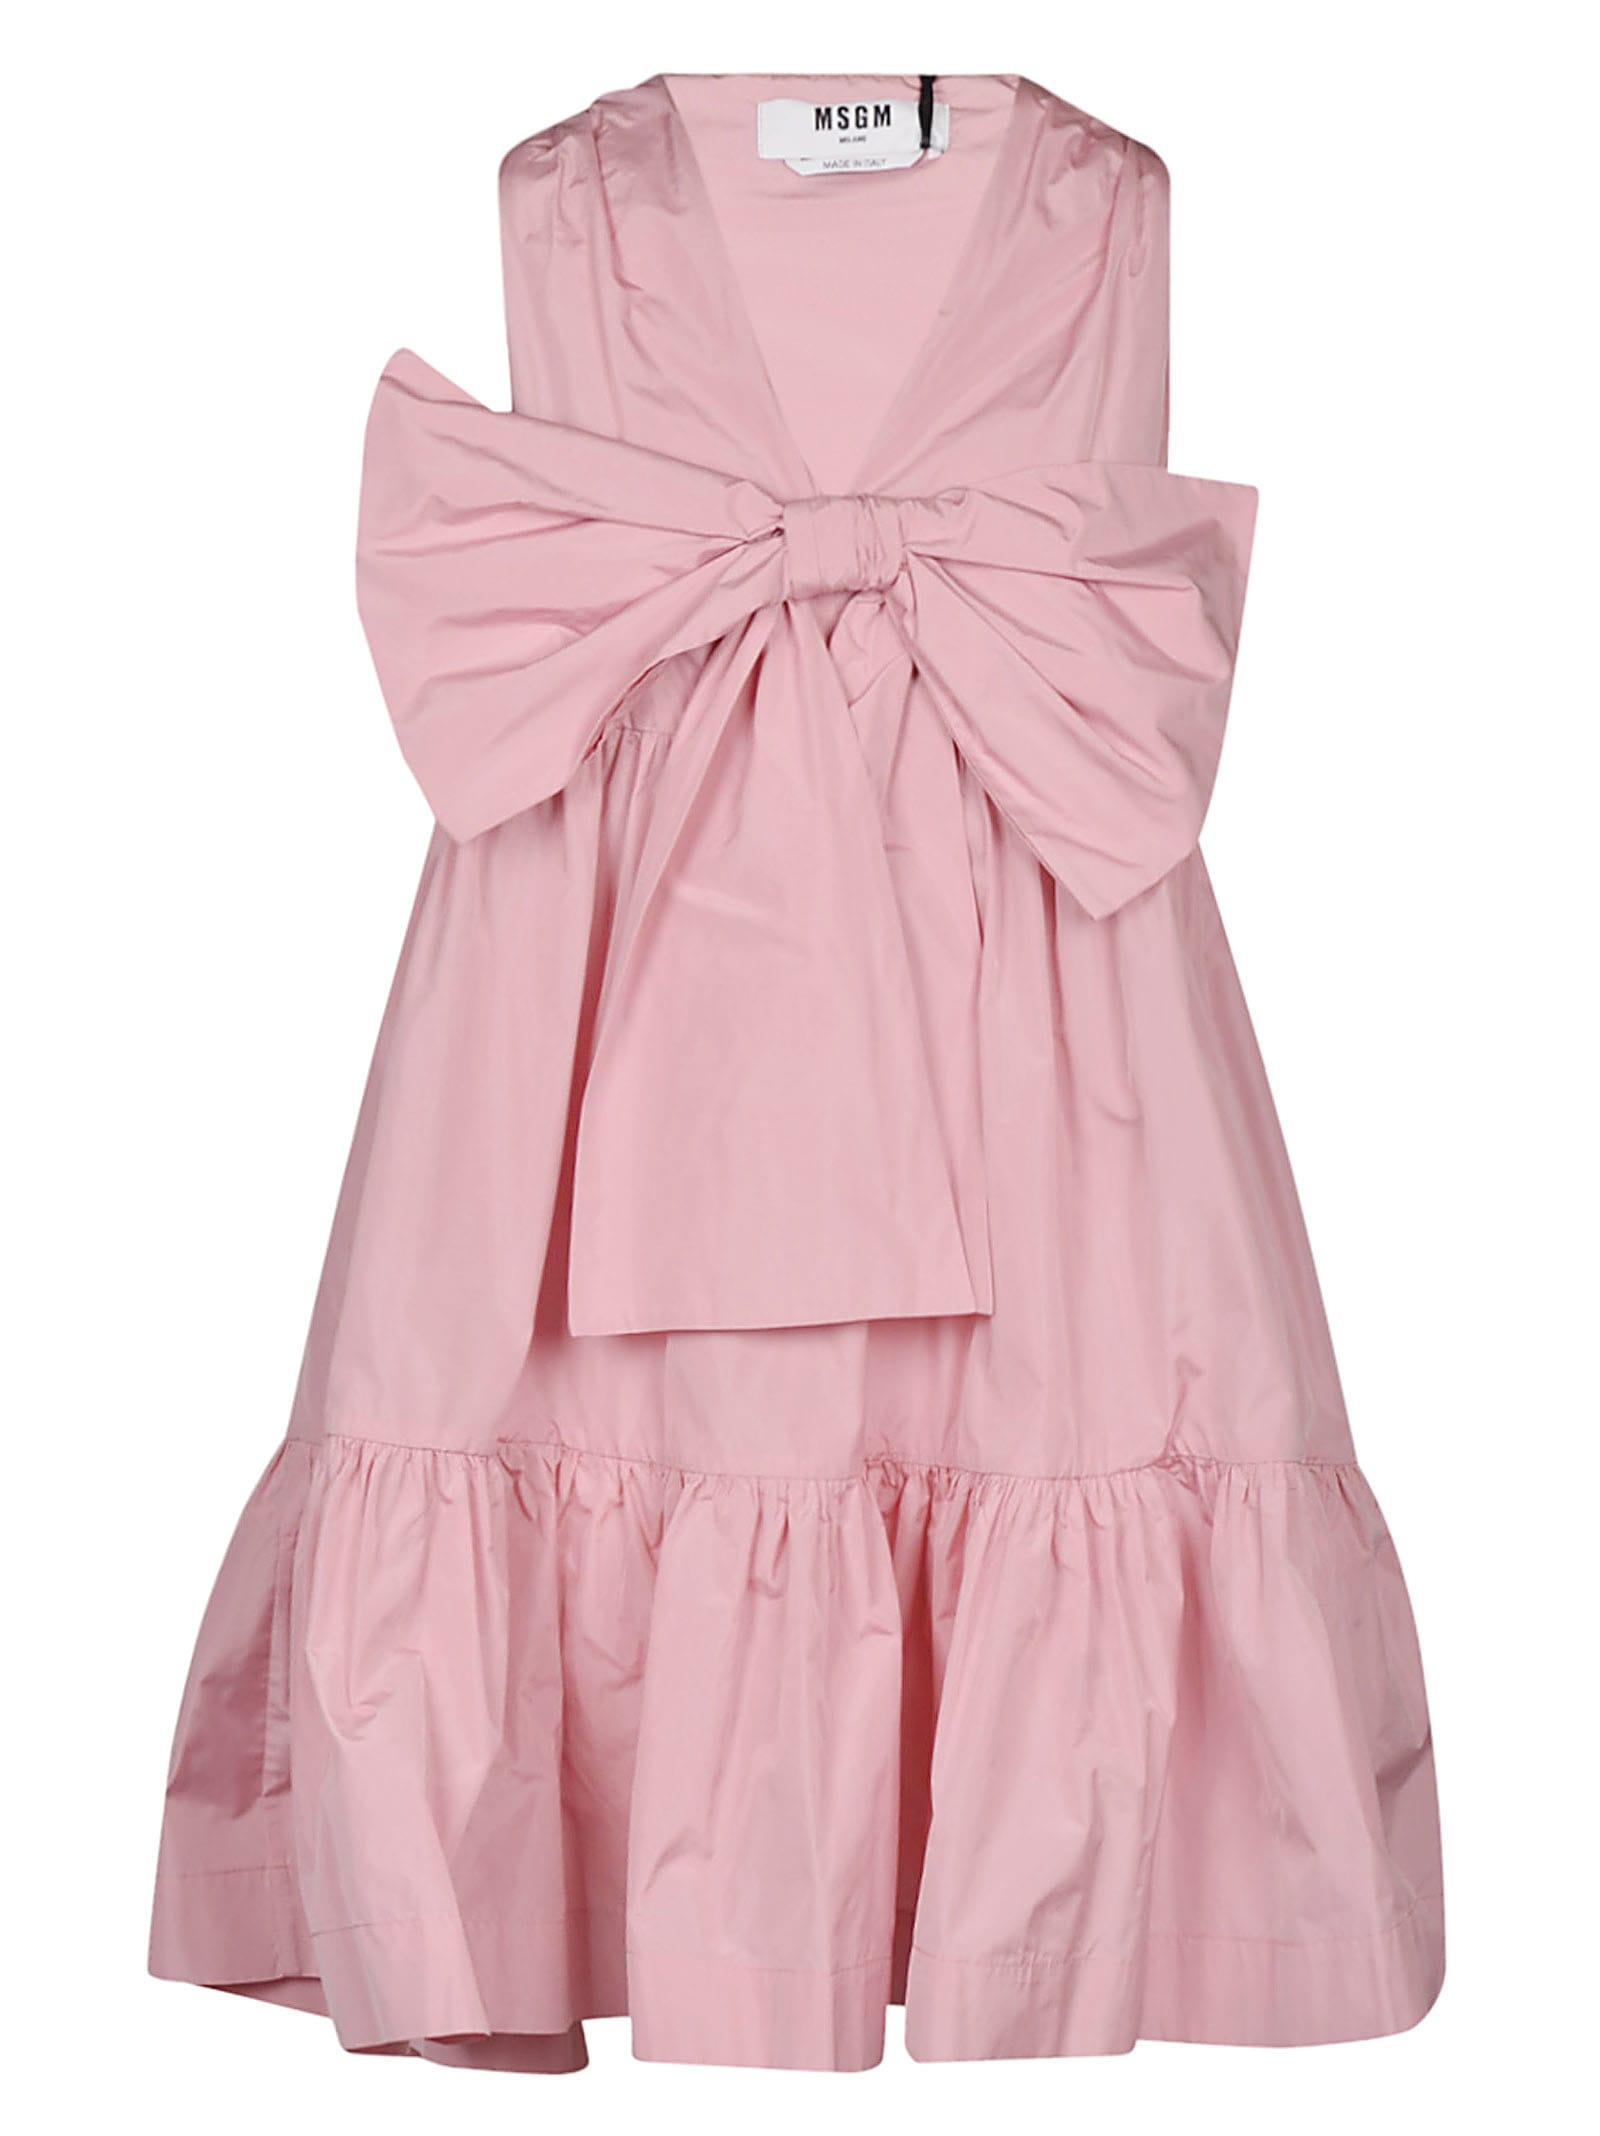 Buy MSGM Bow Detail Flared Sleeveless Dress online, shop MSGM with free shipping